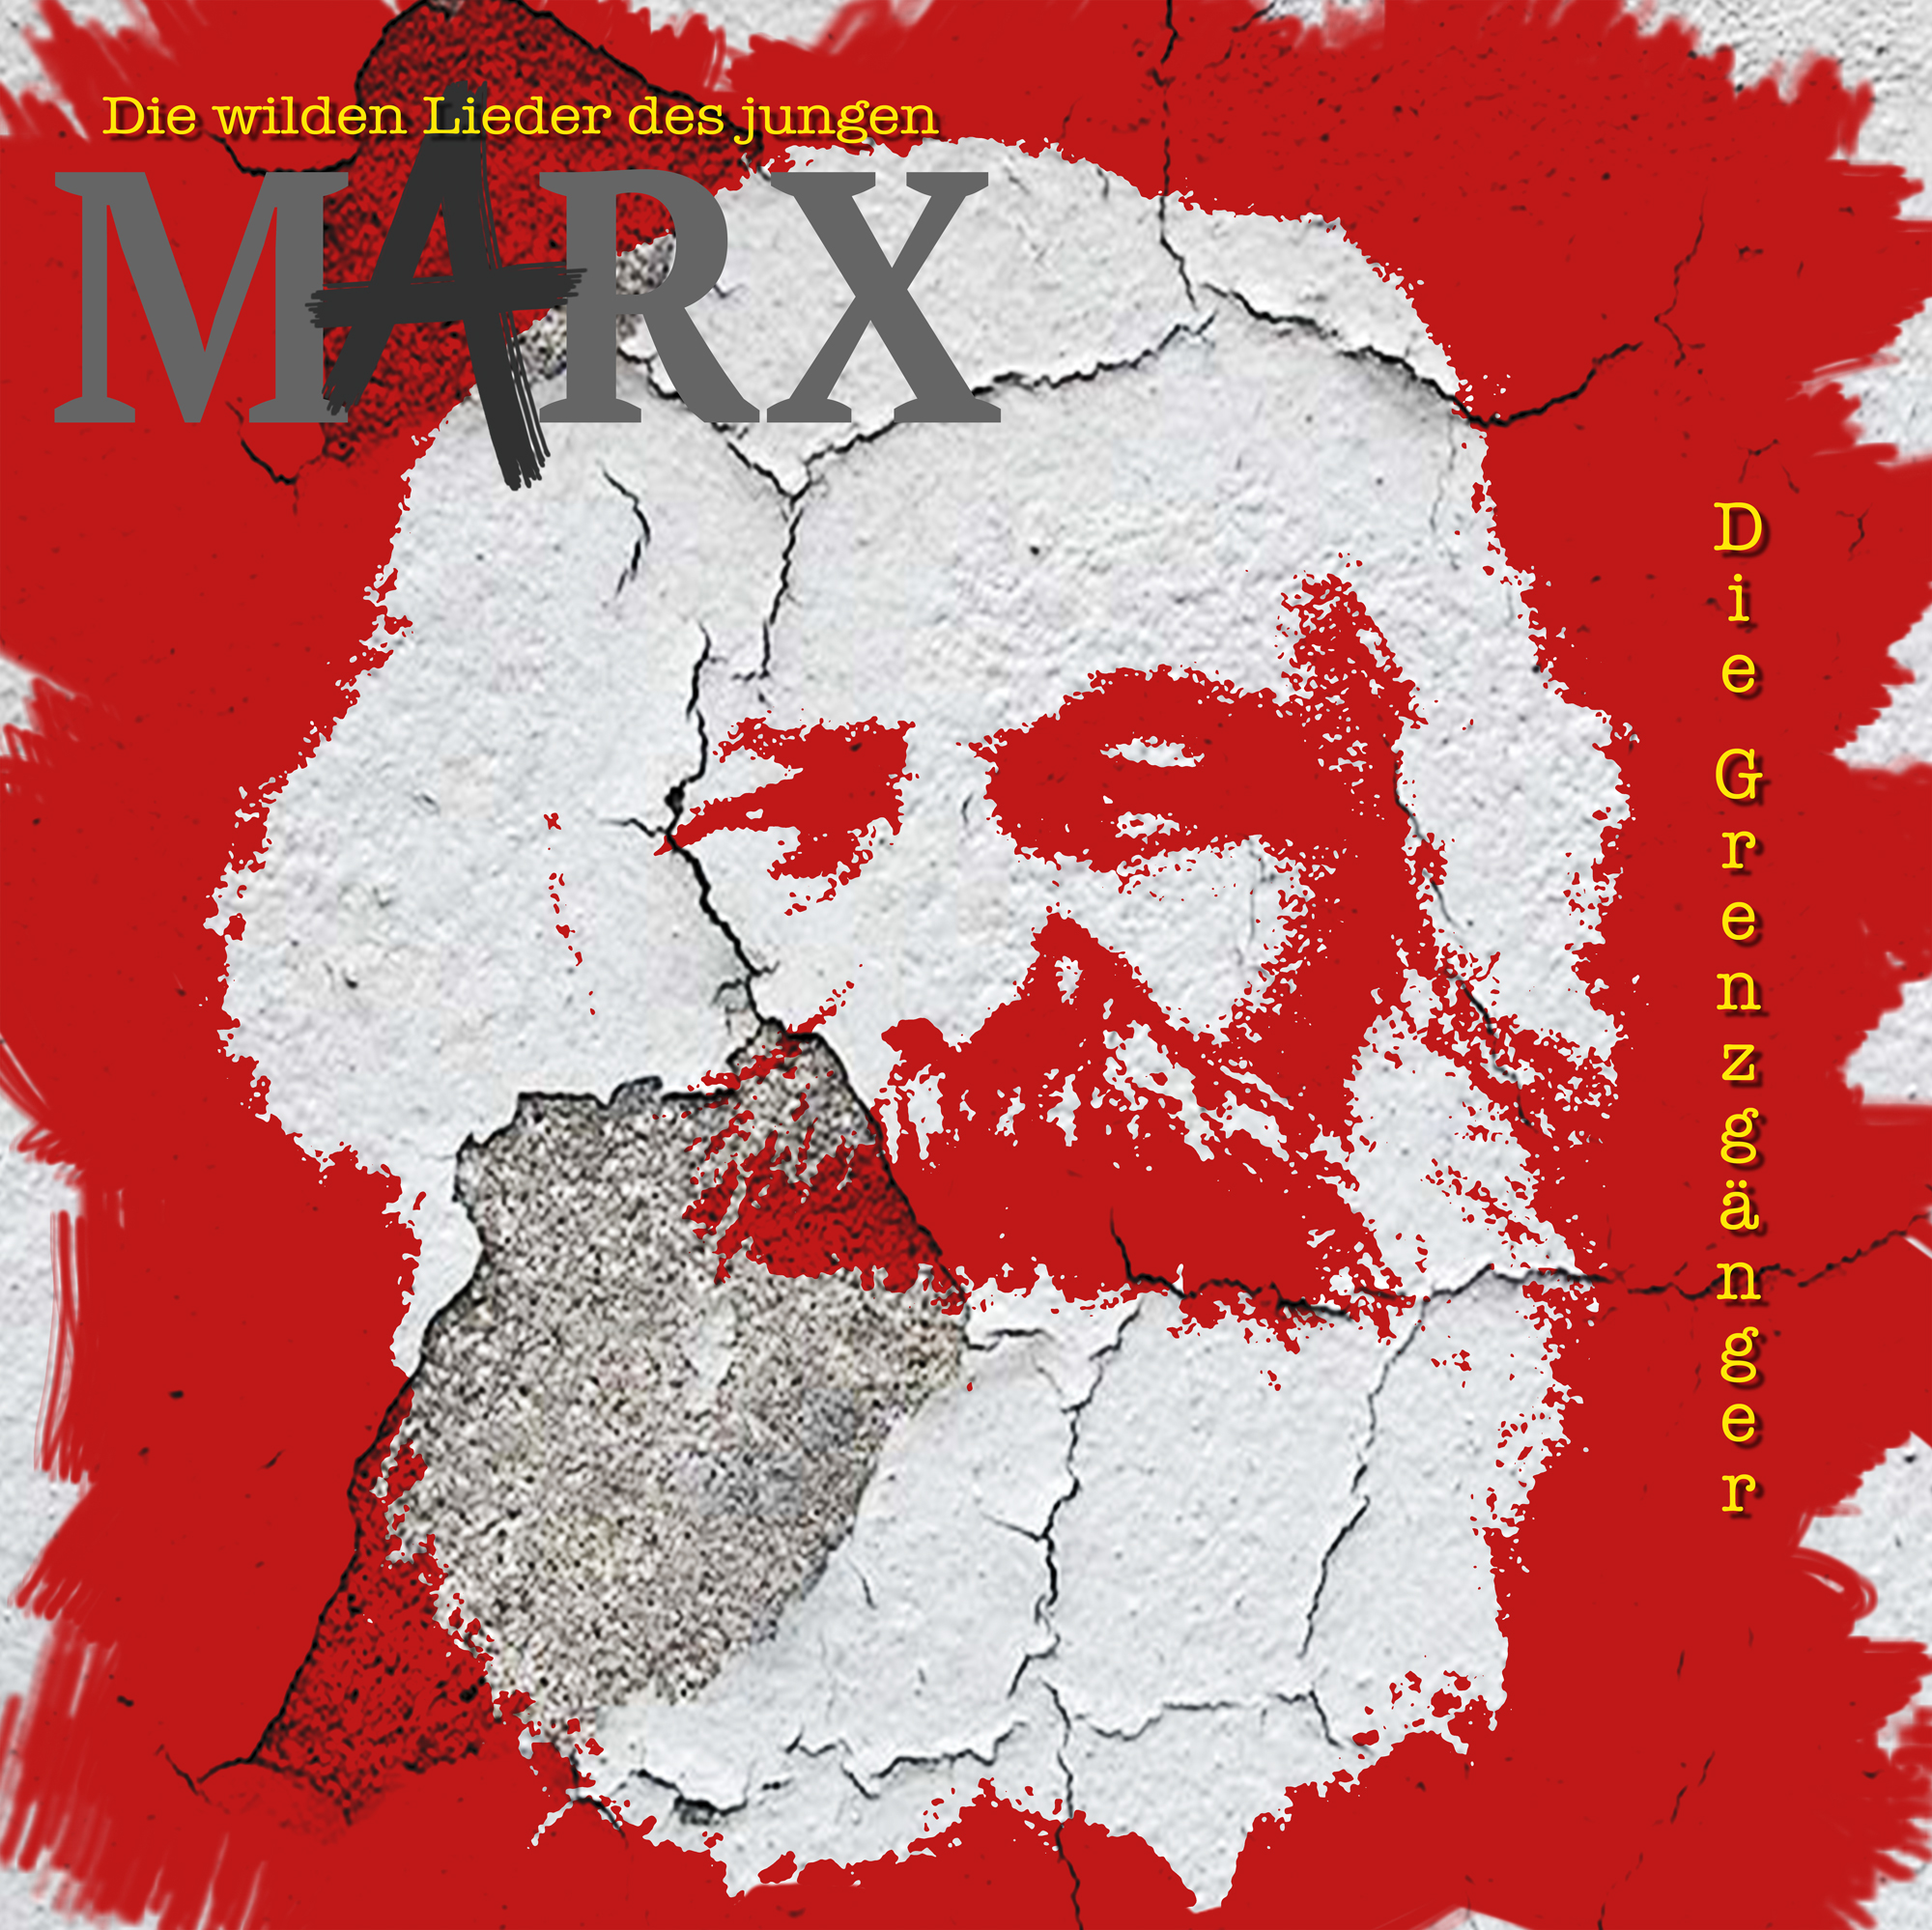 Marx-Cover